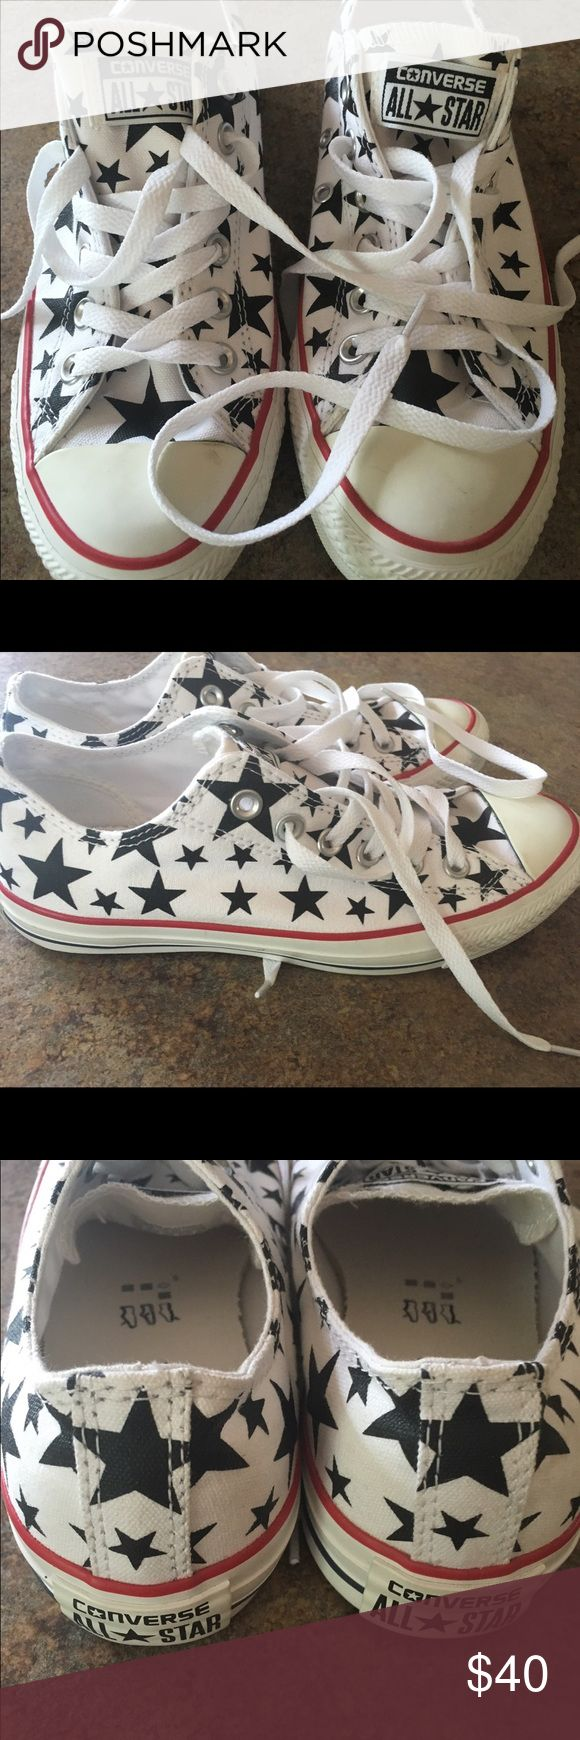 NEW converse with stars ✨ So cute. New converse with stars and a red stripe along the bottom. So cute!!! Converse Shoes